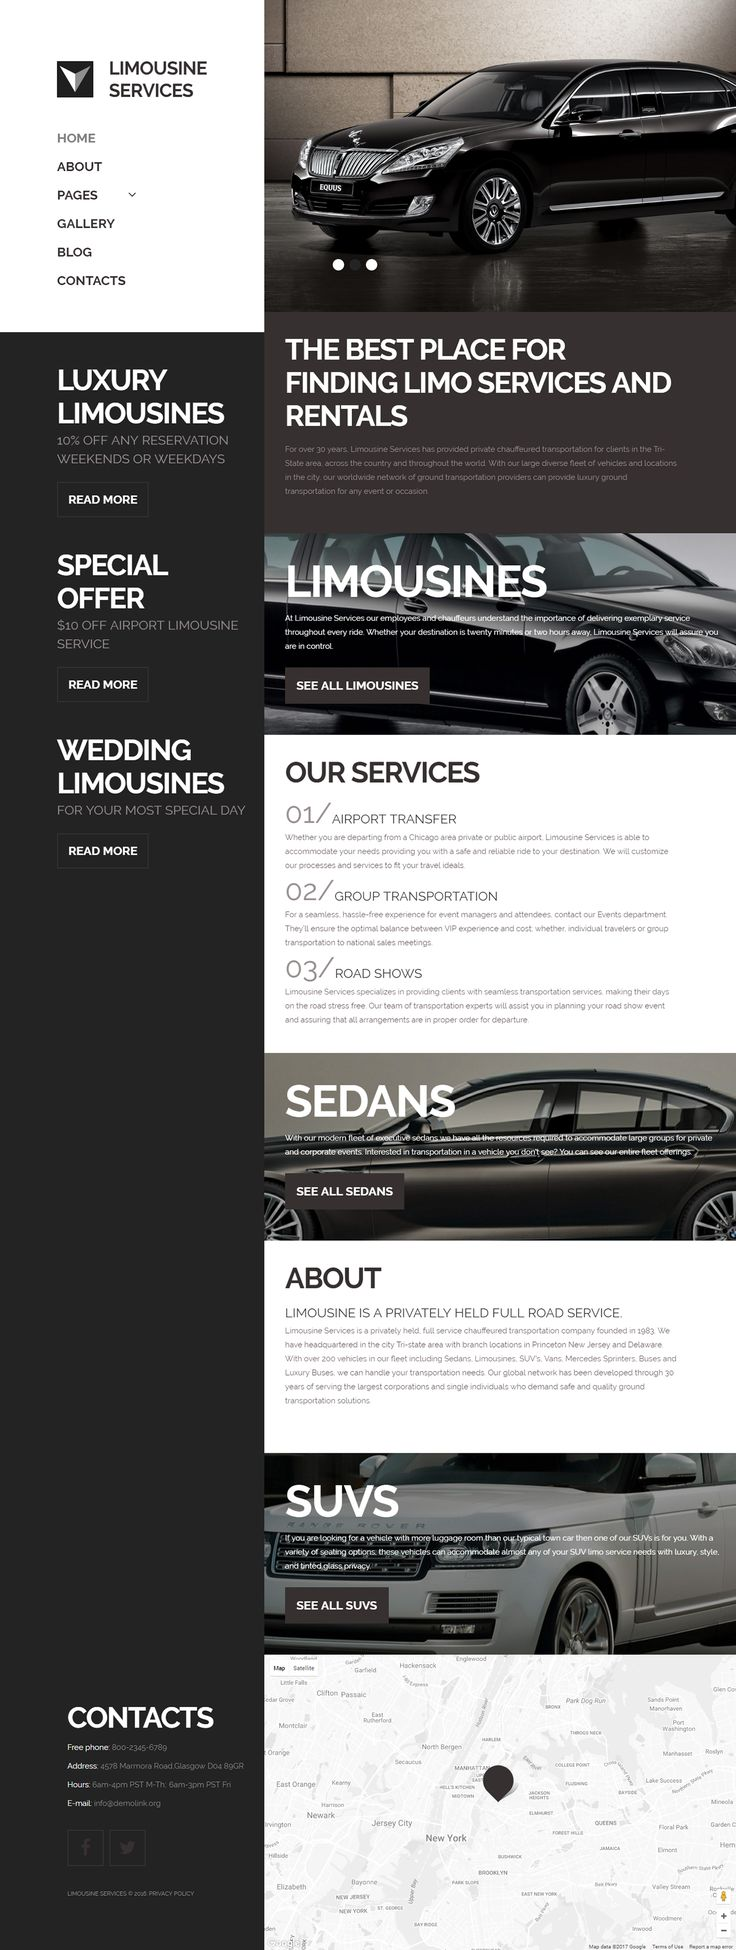 Limo rentals near knoxville - Limousine Services Joomla Template